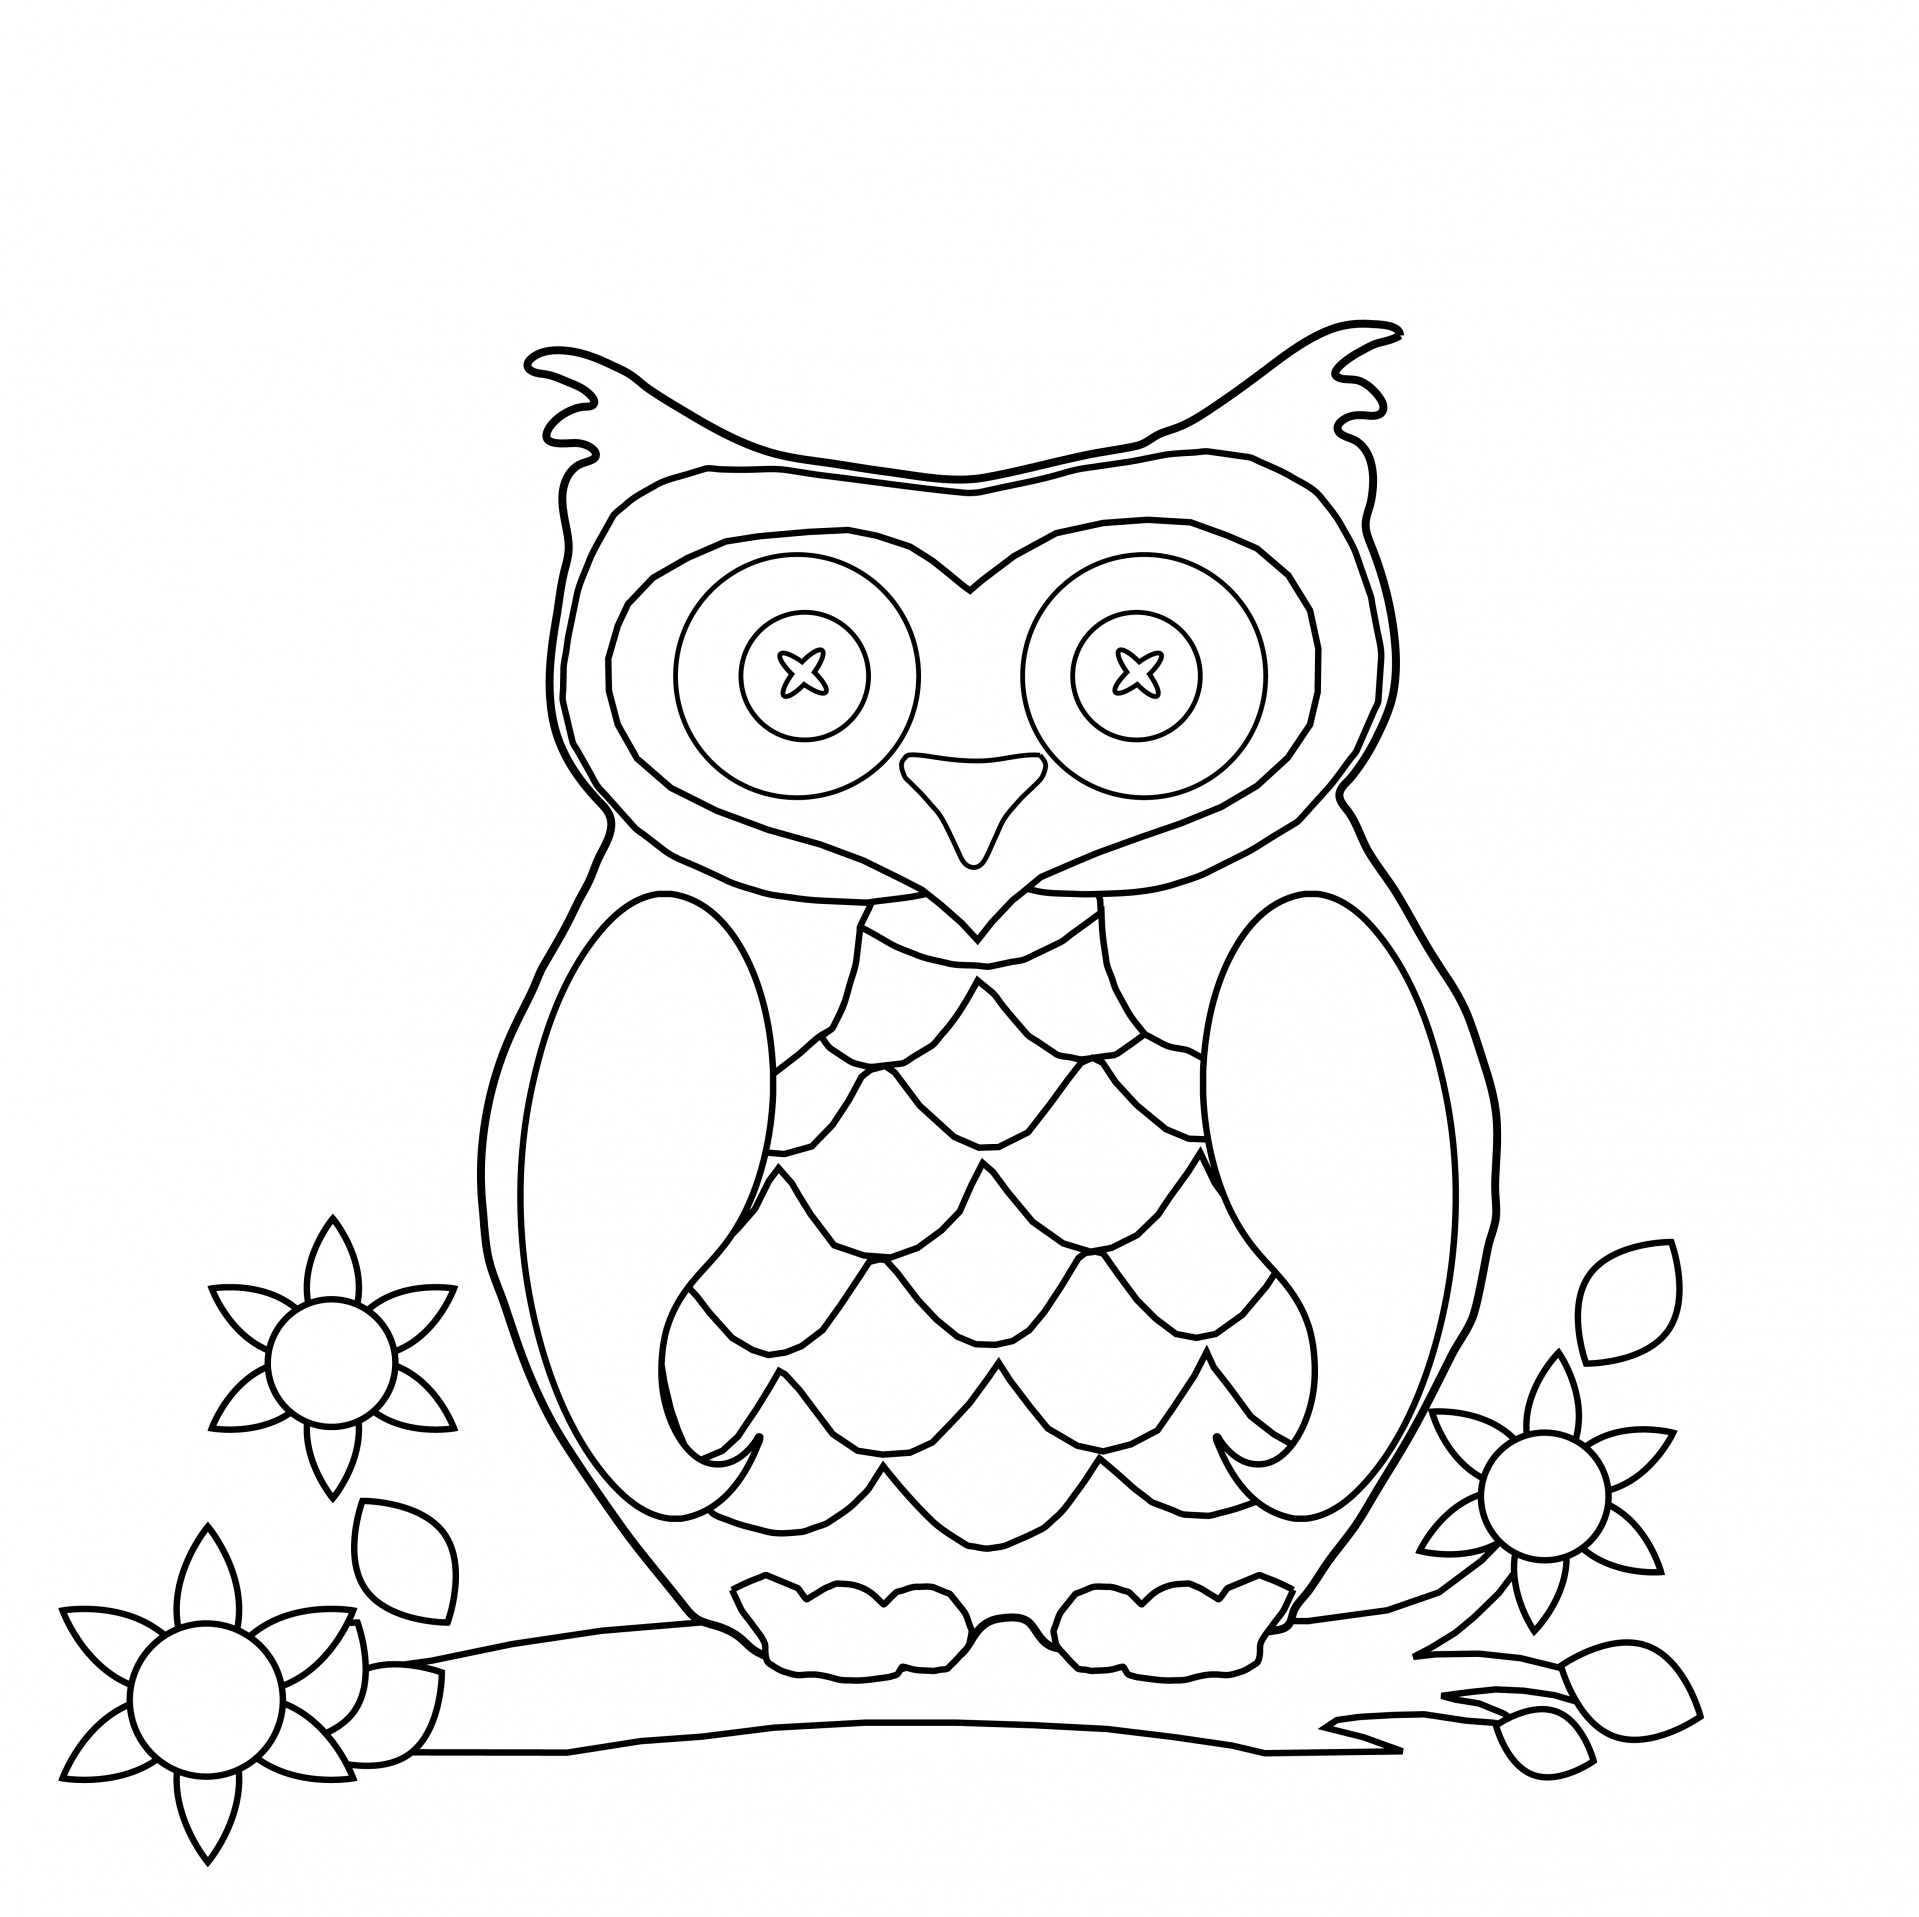 Soft image for printable adult coloring pages abstract